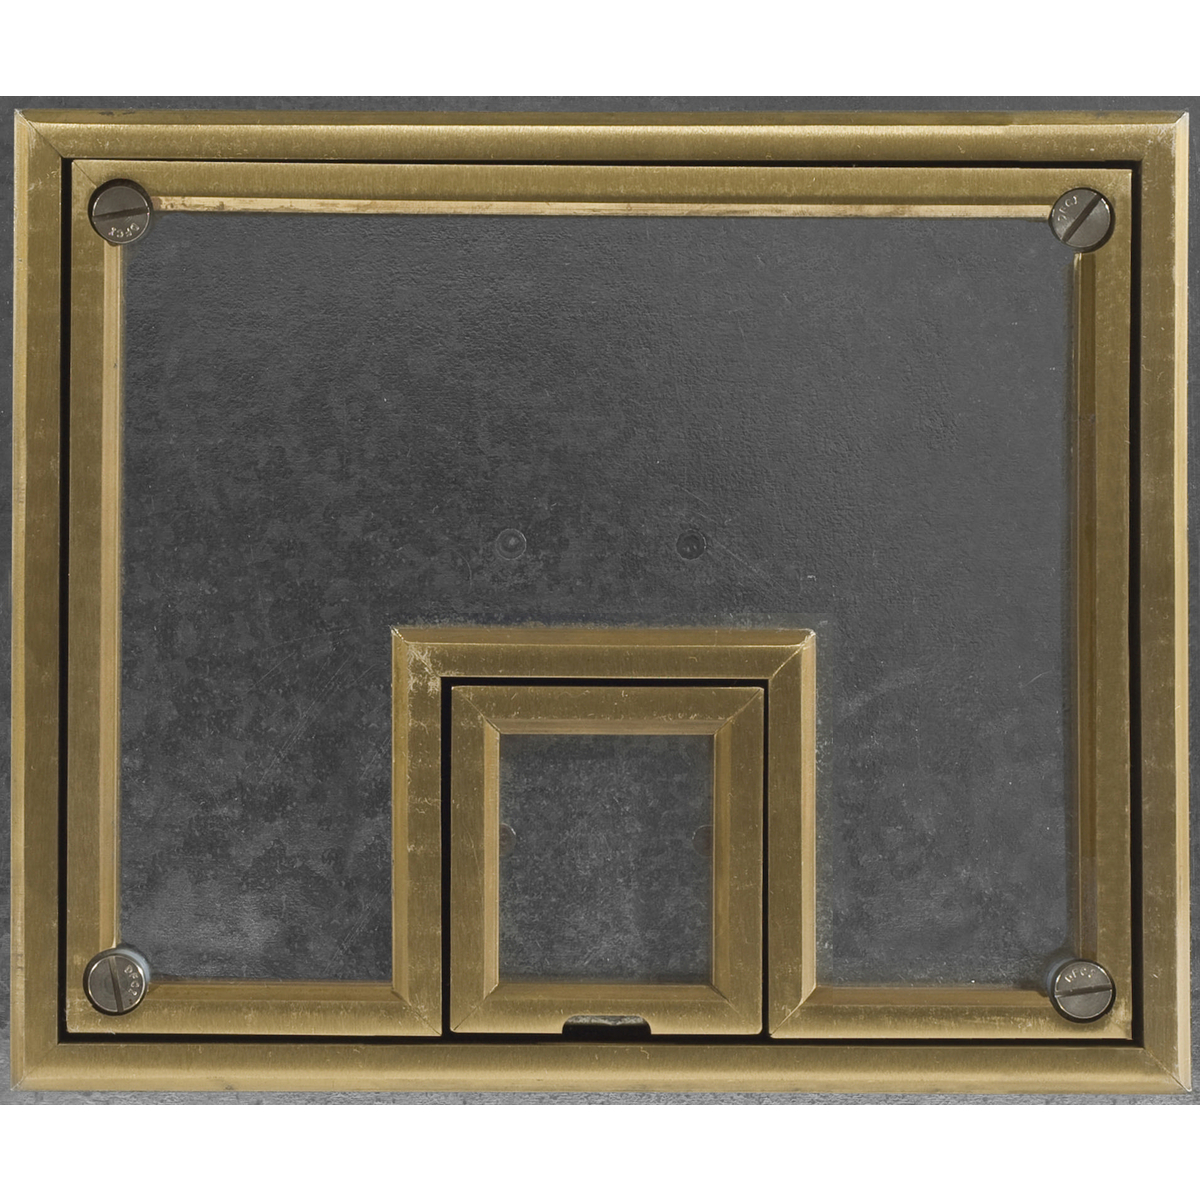 Hubbell CFB7TBRS REC FB COVER, 7-G, BRASS, 1/2-IN TILE